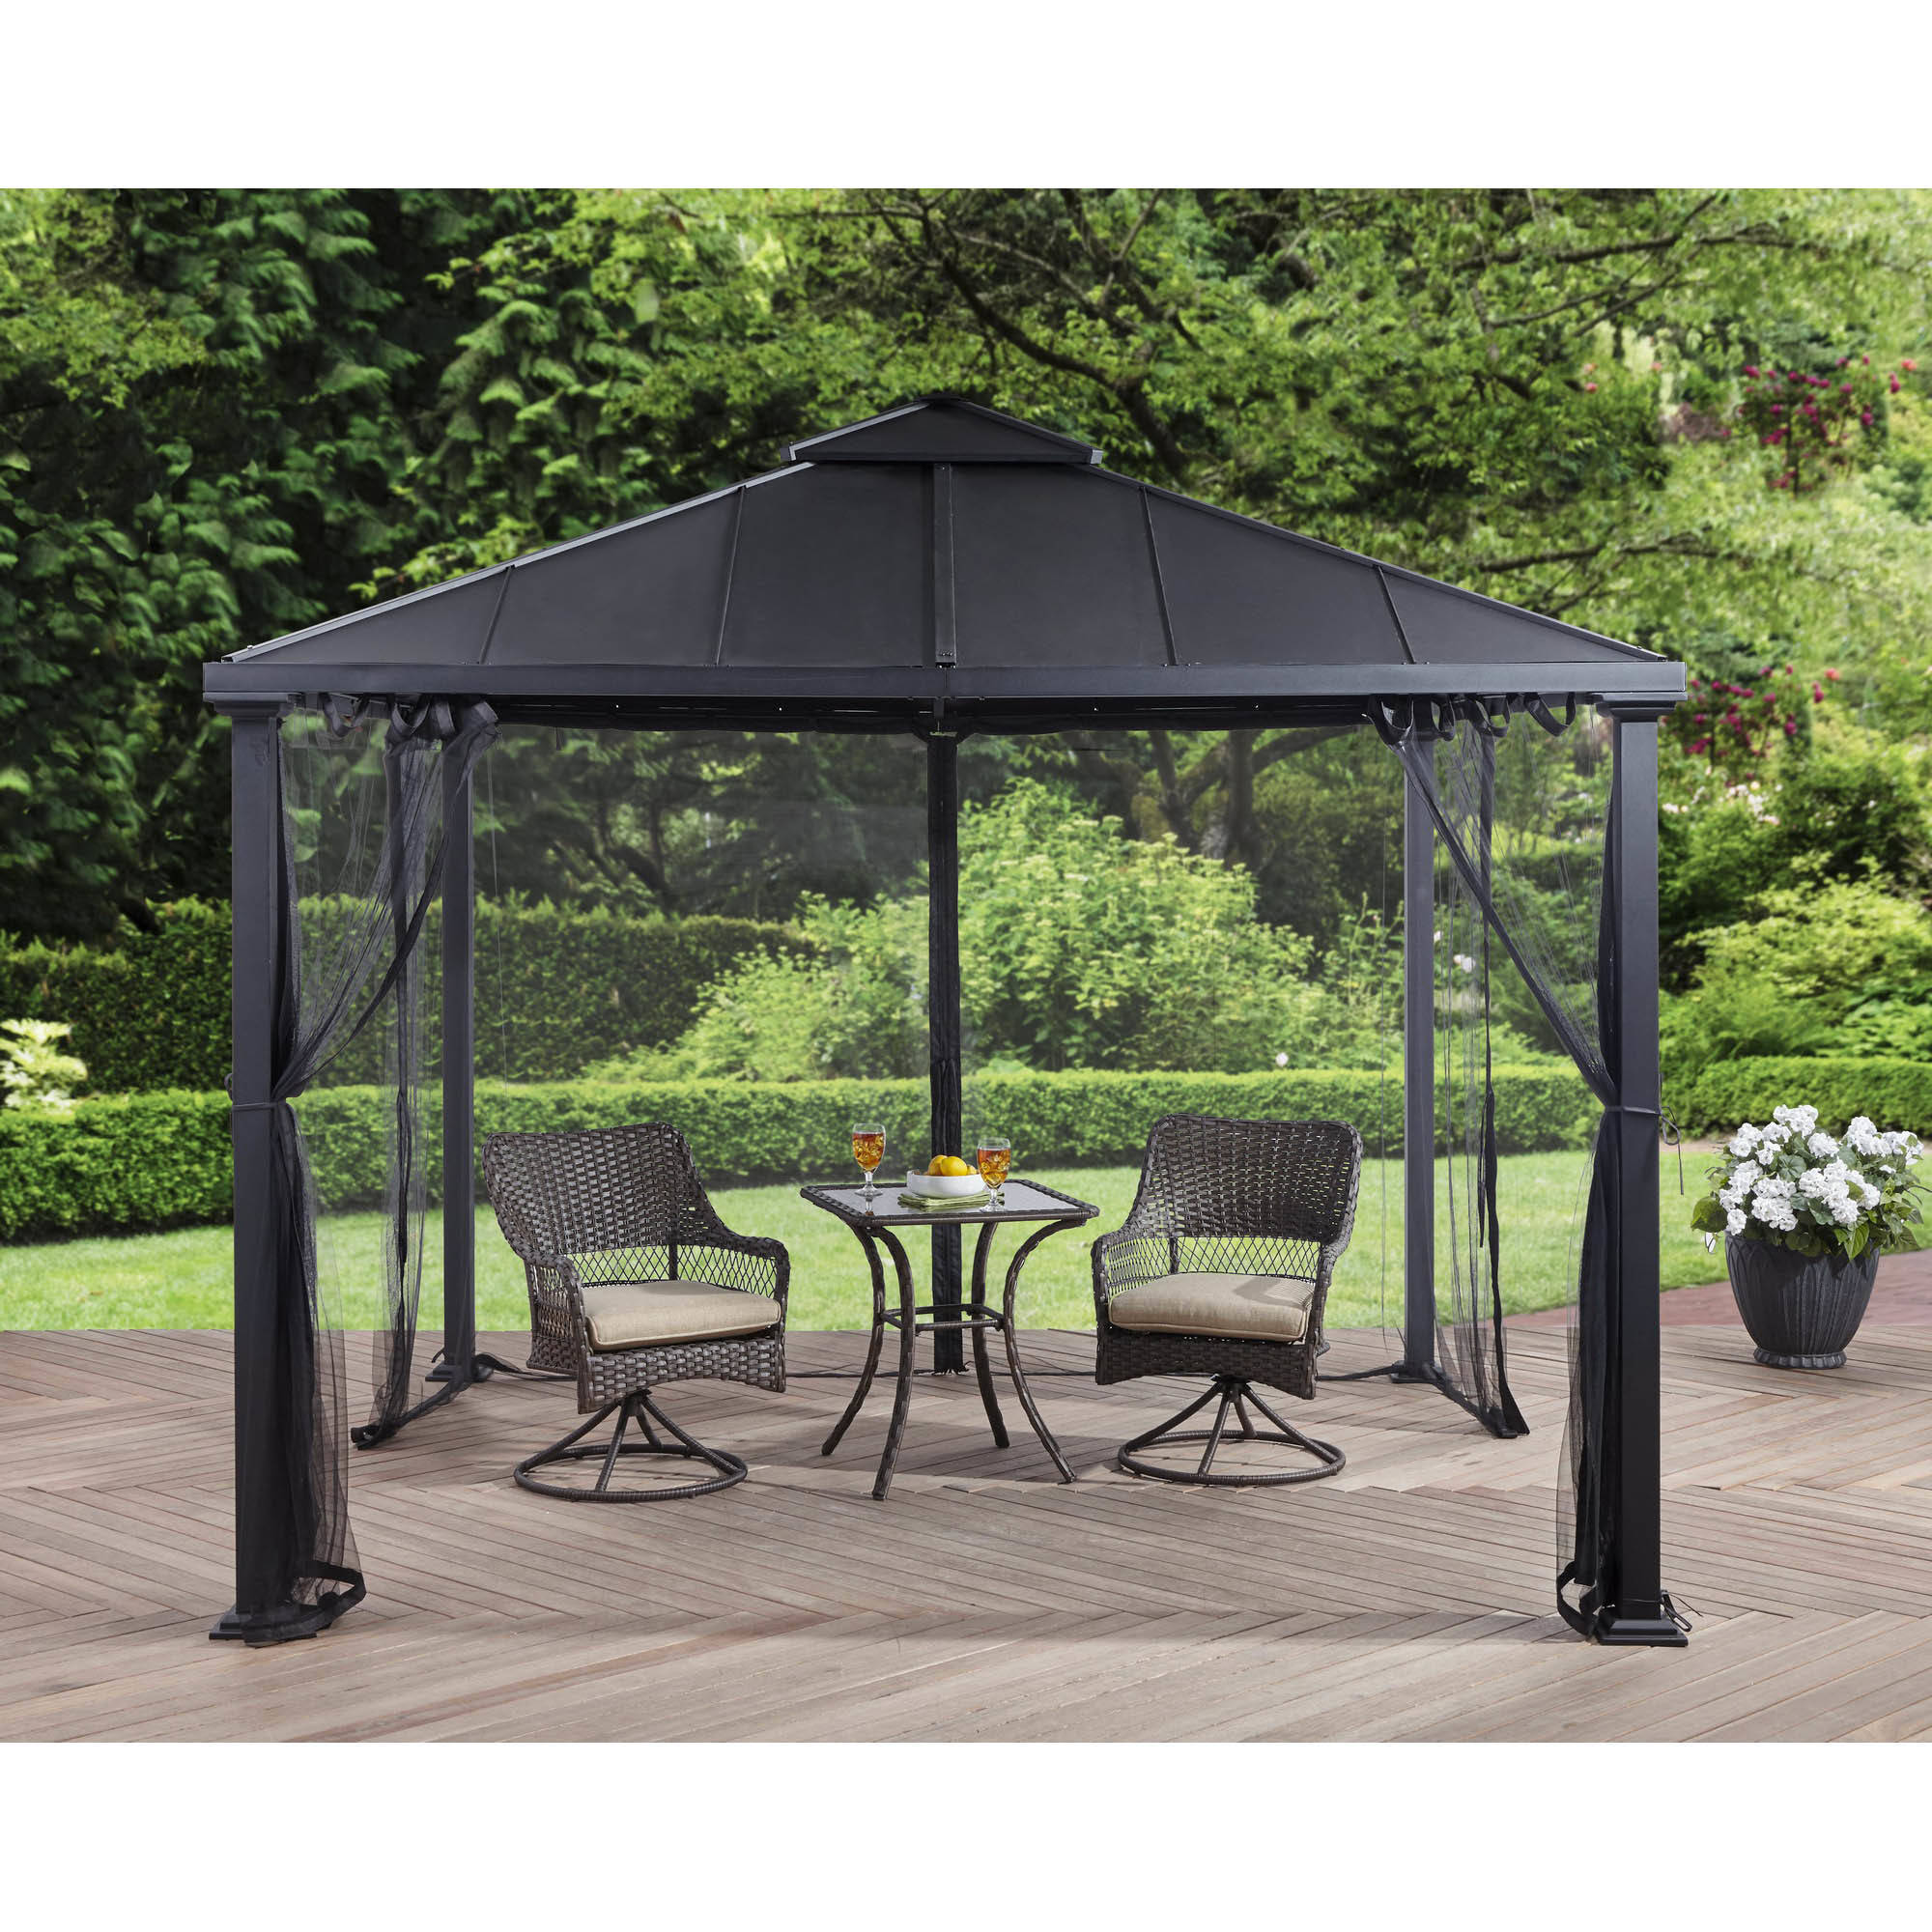 Better Homes and Gardens Sullivan Ridge Hard Top Gazebo with Netting, 10x10 by